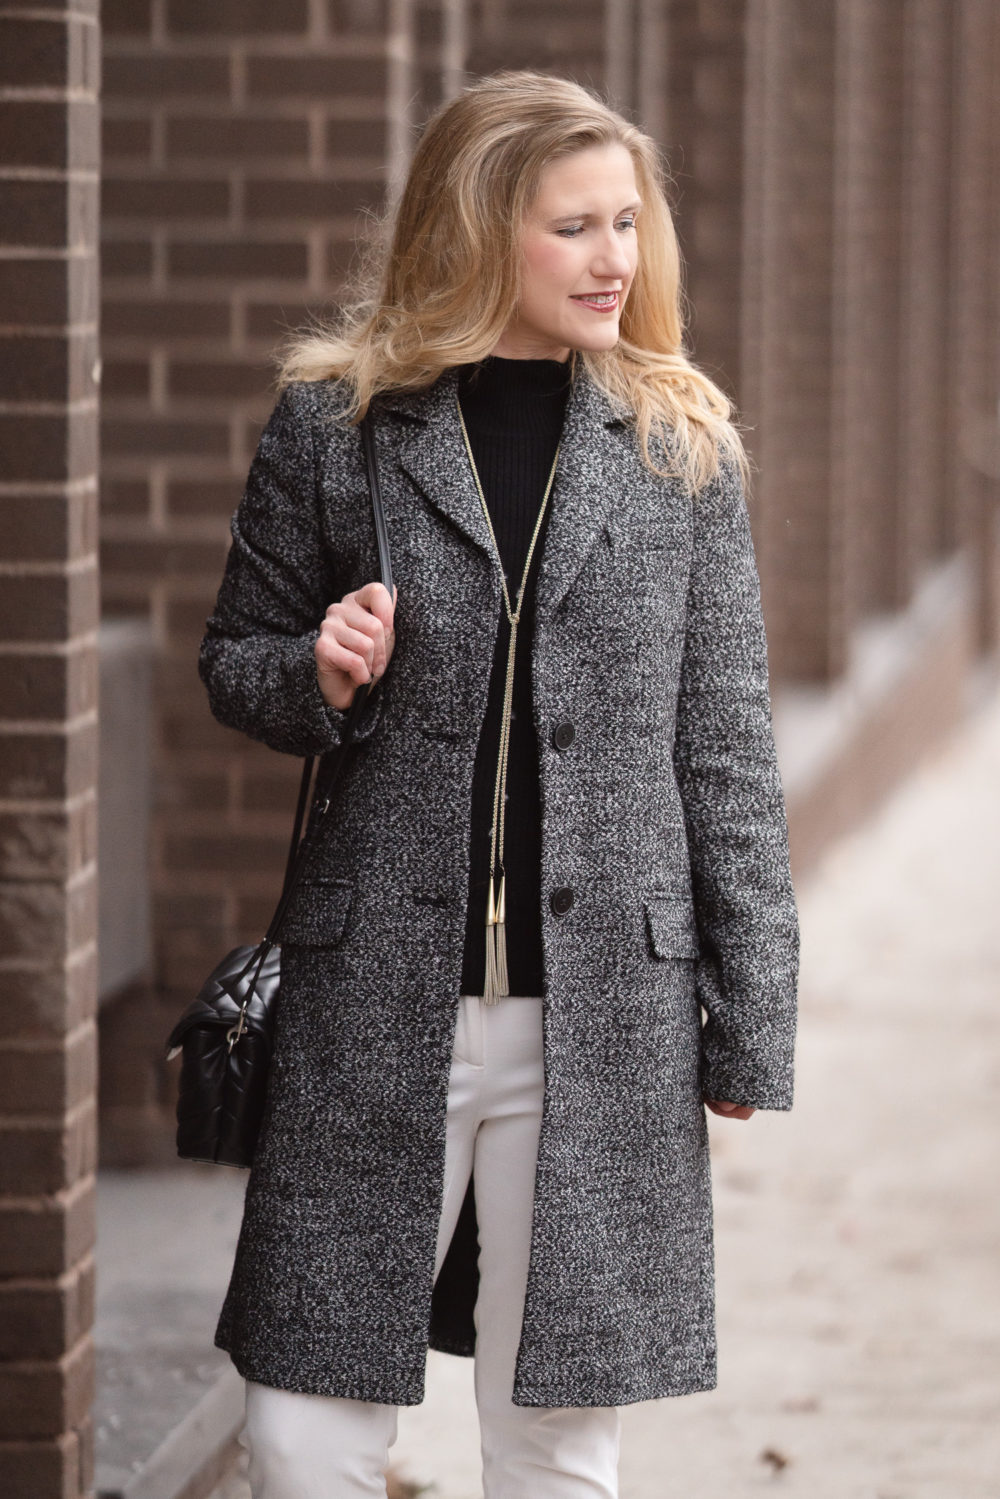 Petite Fashion and Style Blog |Lark & Ro Single Breasted Walker Coat | Amazon Cashmere Sweater